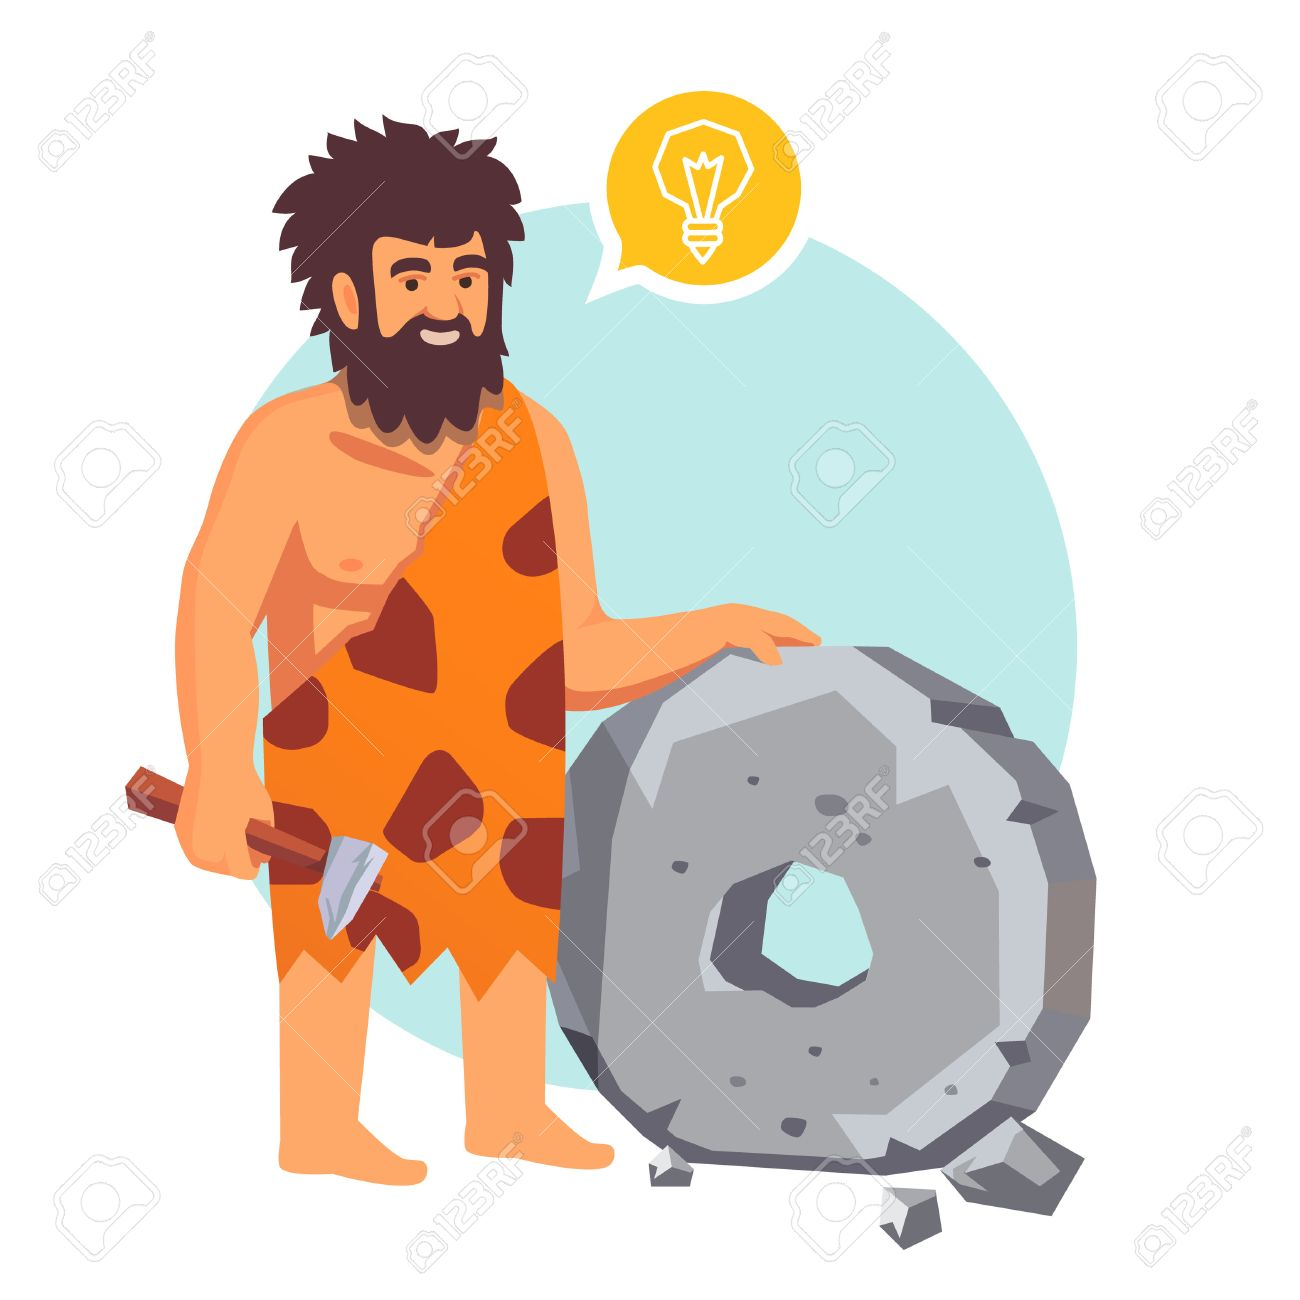 Stone age primitive man had an idea and invents a wheel. Flat style vector illustration isolated on white background. - 52904062